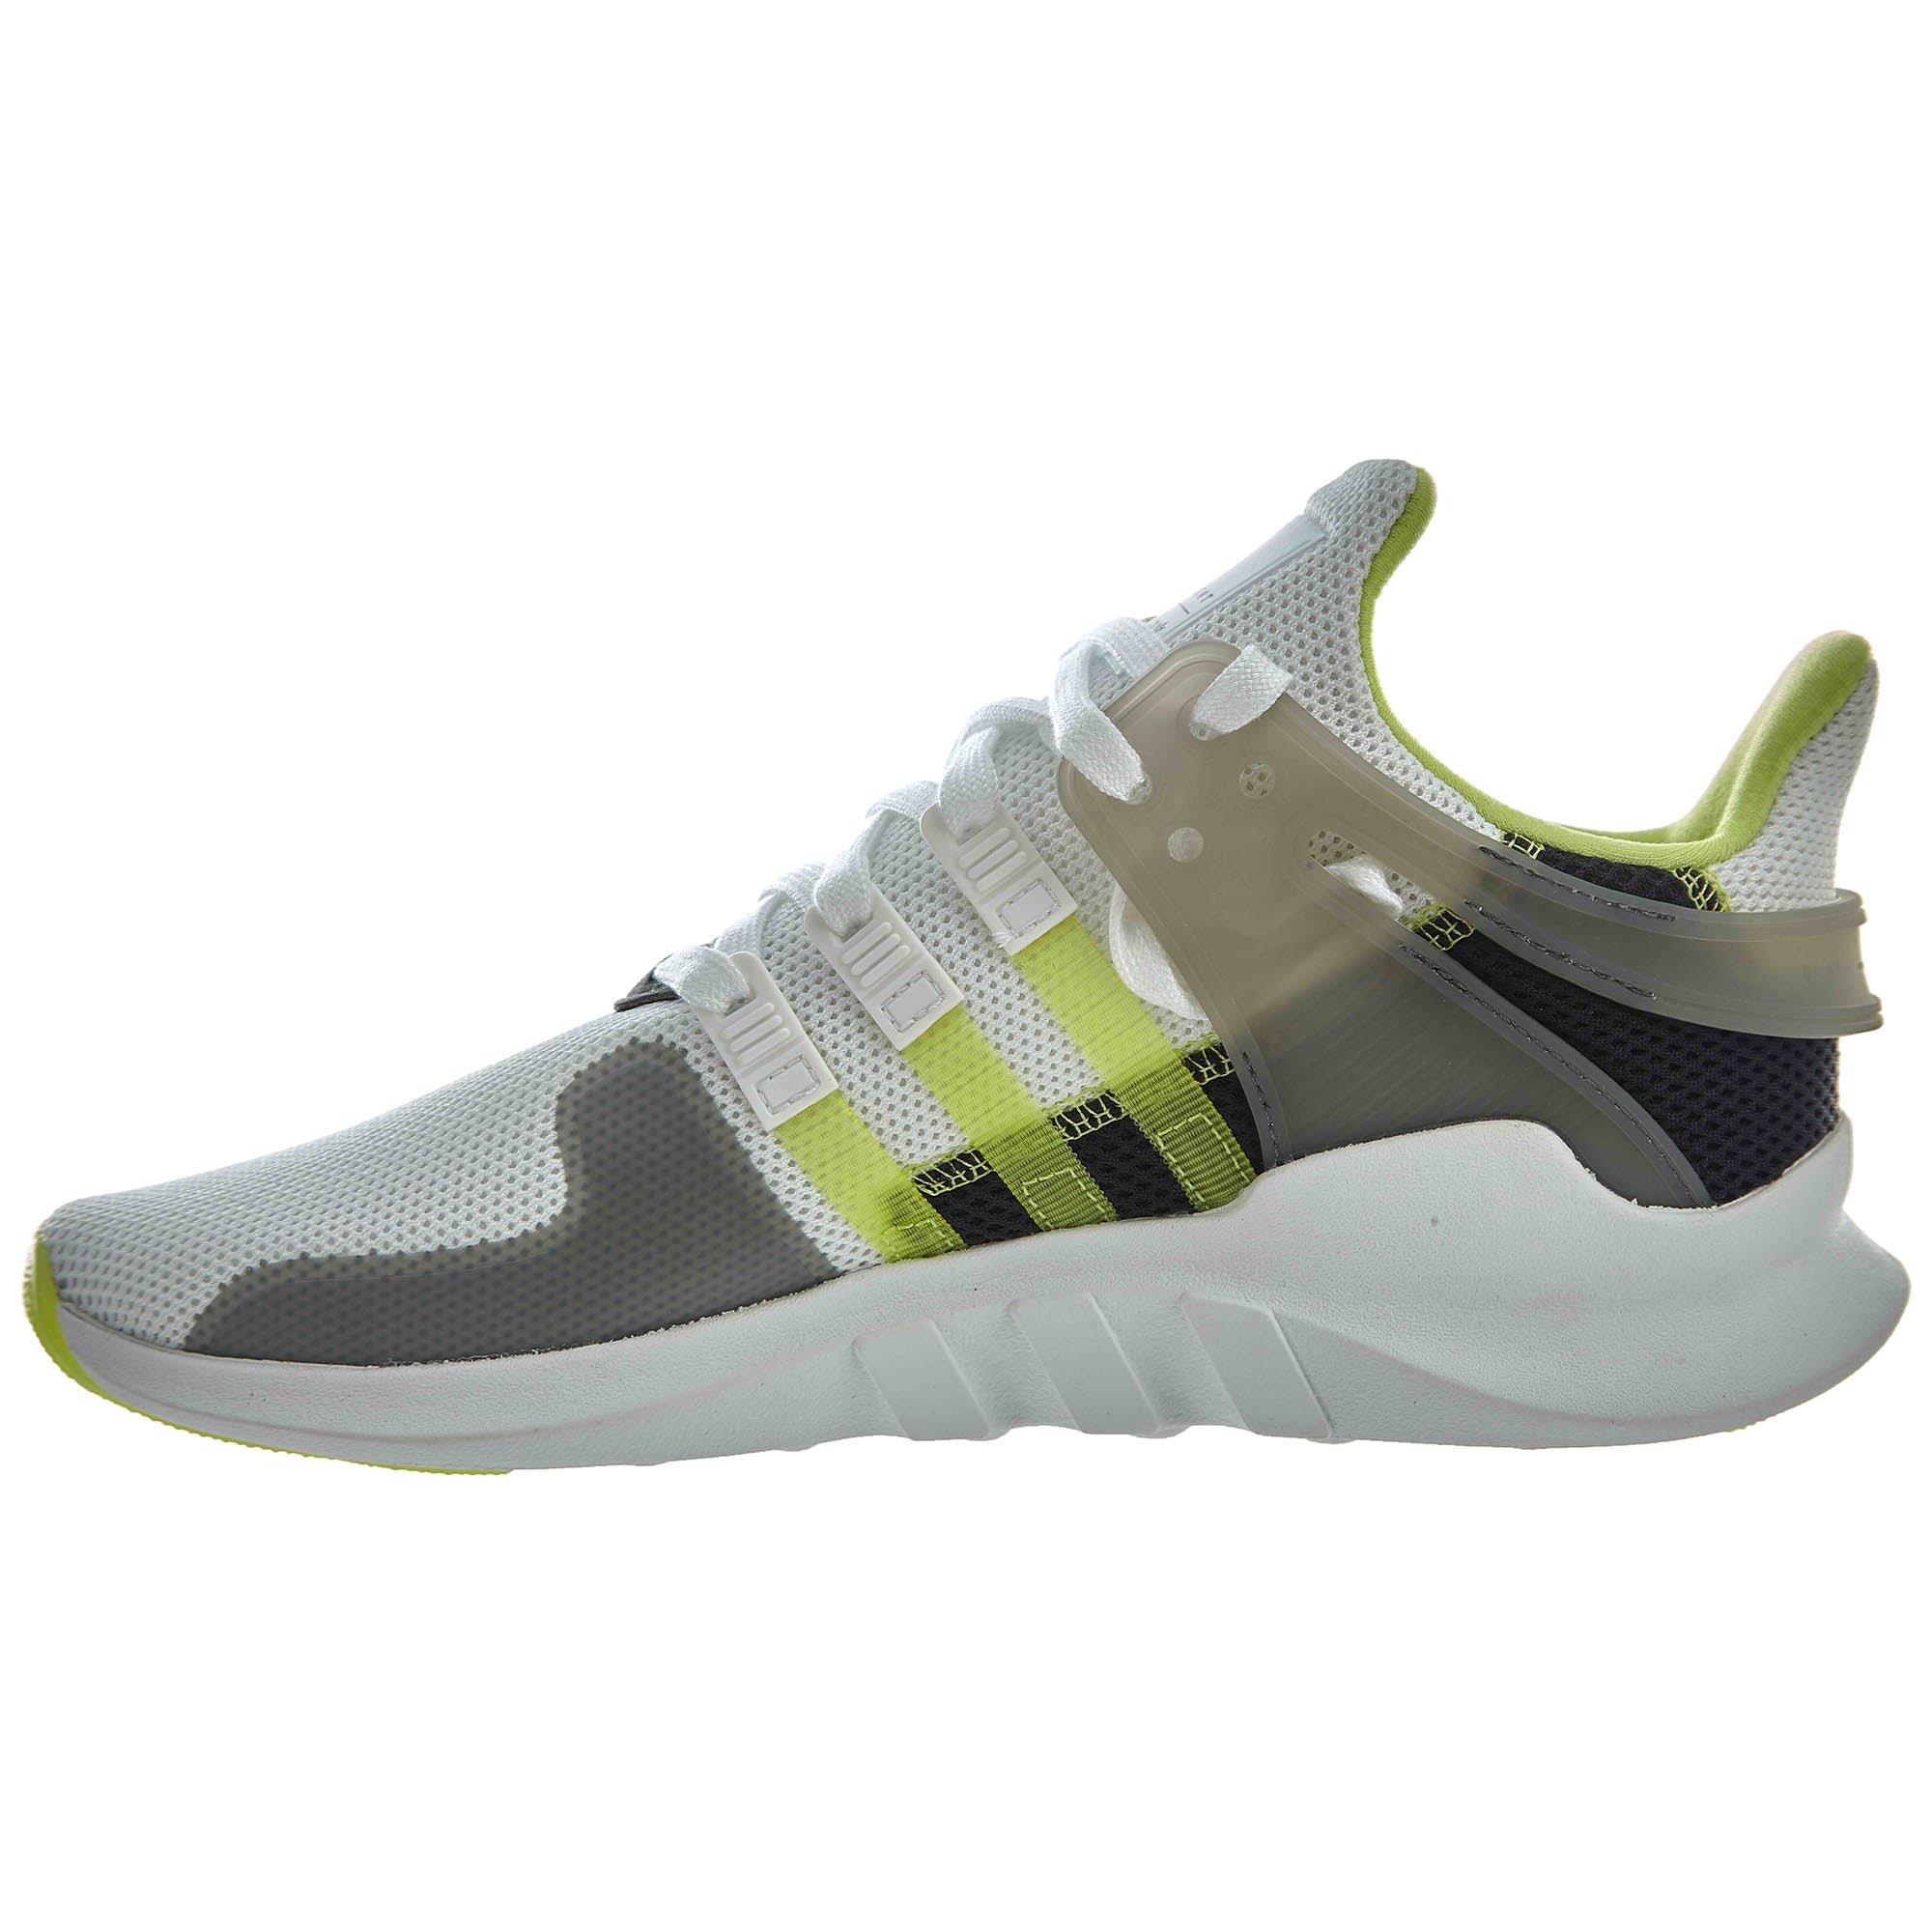 Adidas Eqt Support Adv Mens Style : Cq2255-Wht/Grey/Yell